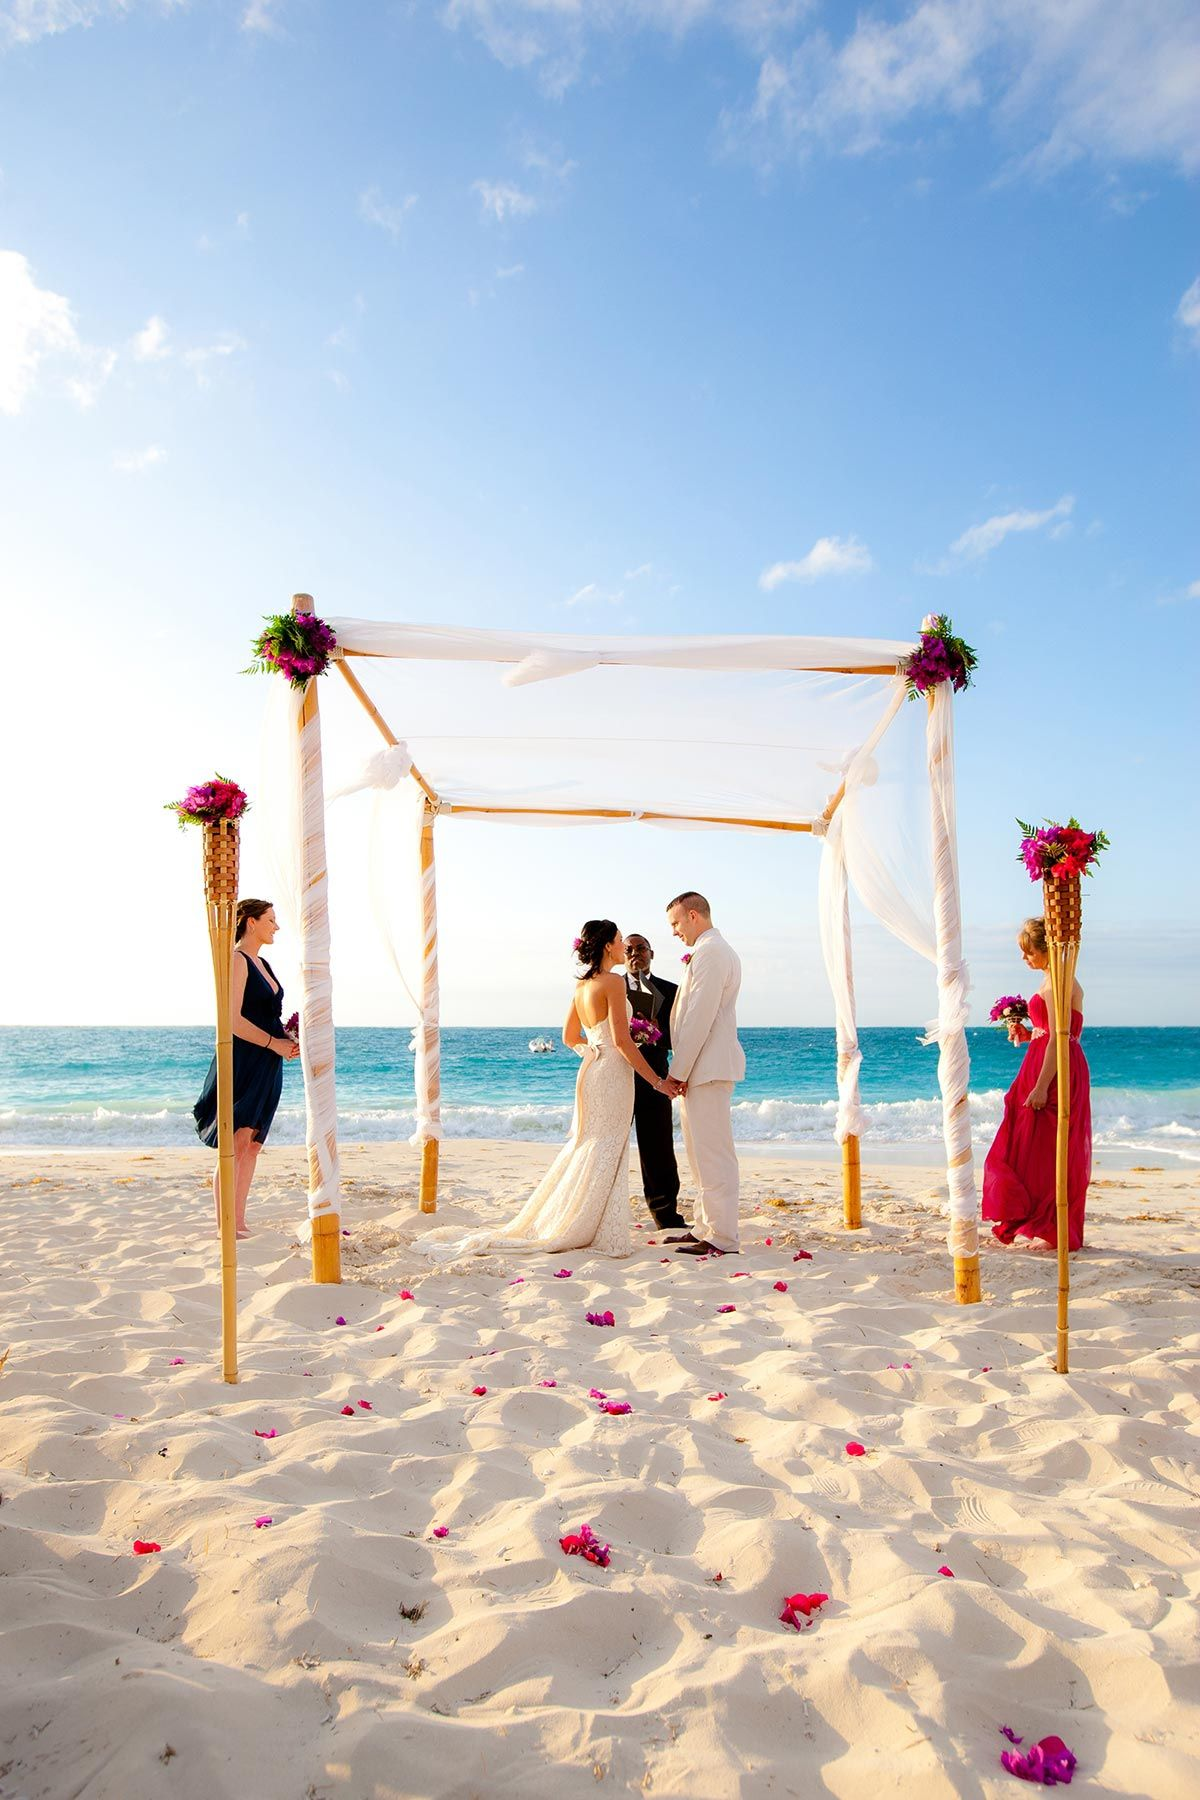 Turks And Caicos Is A Wedding Destination The Pristine Beaches Remote Cays Turquoise Waters Ar Turks And Caicos Wedding Destination Wedding Turks And Caicos